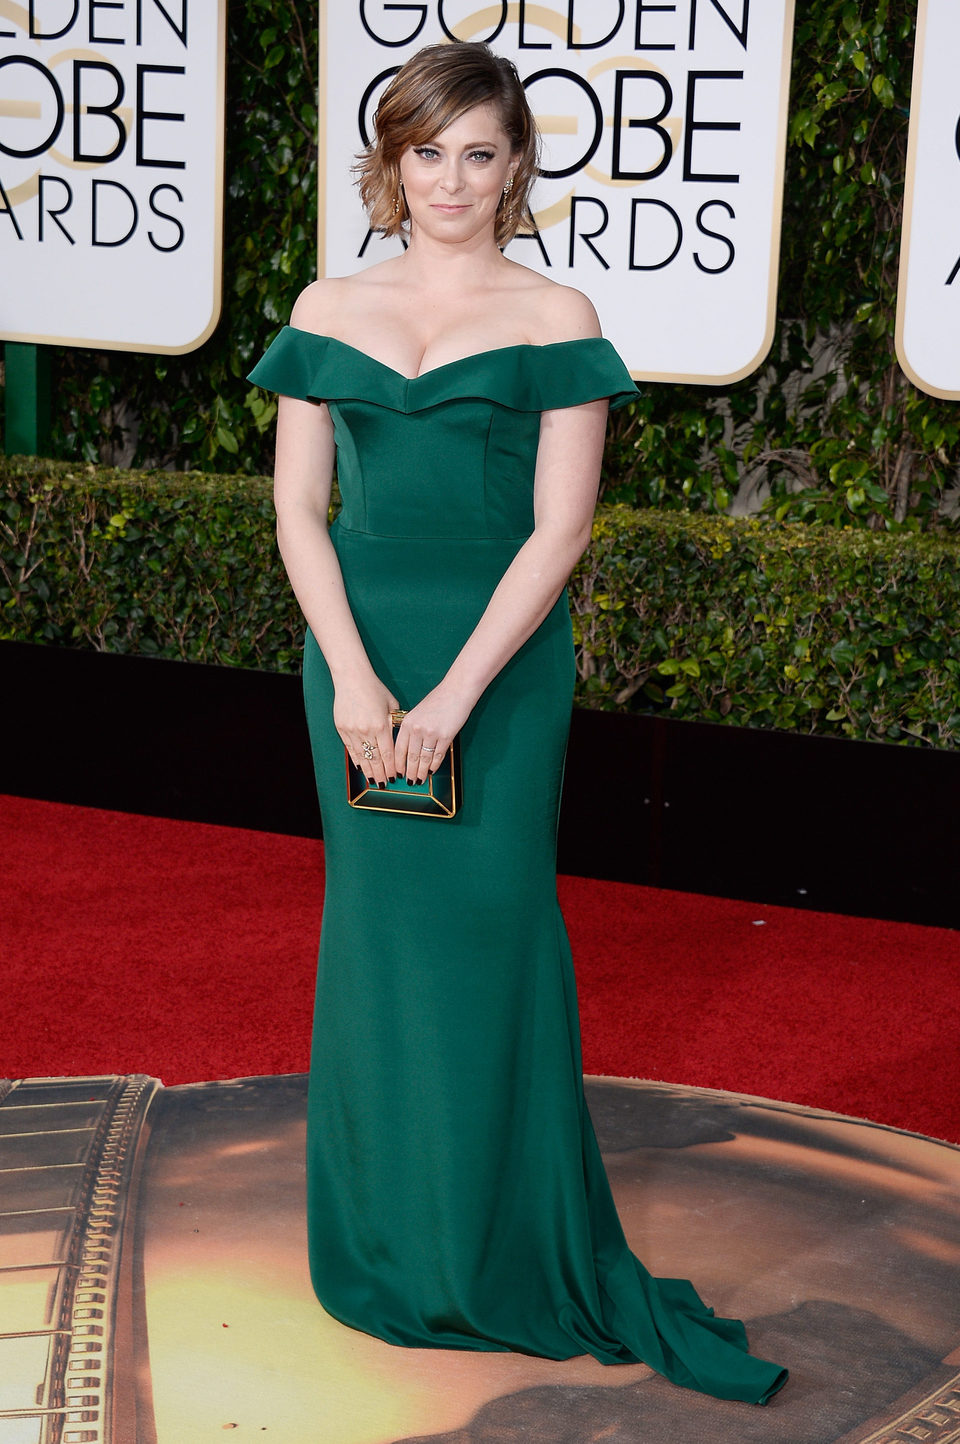 Rachel Bloom in the 2016 Golden Globes red carpet